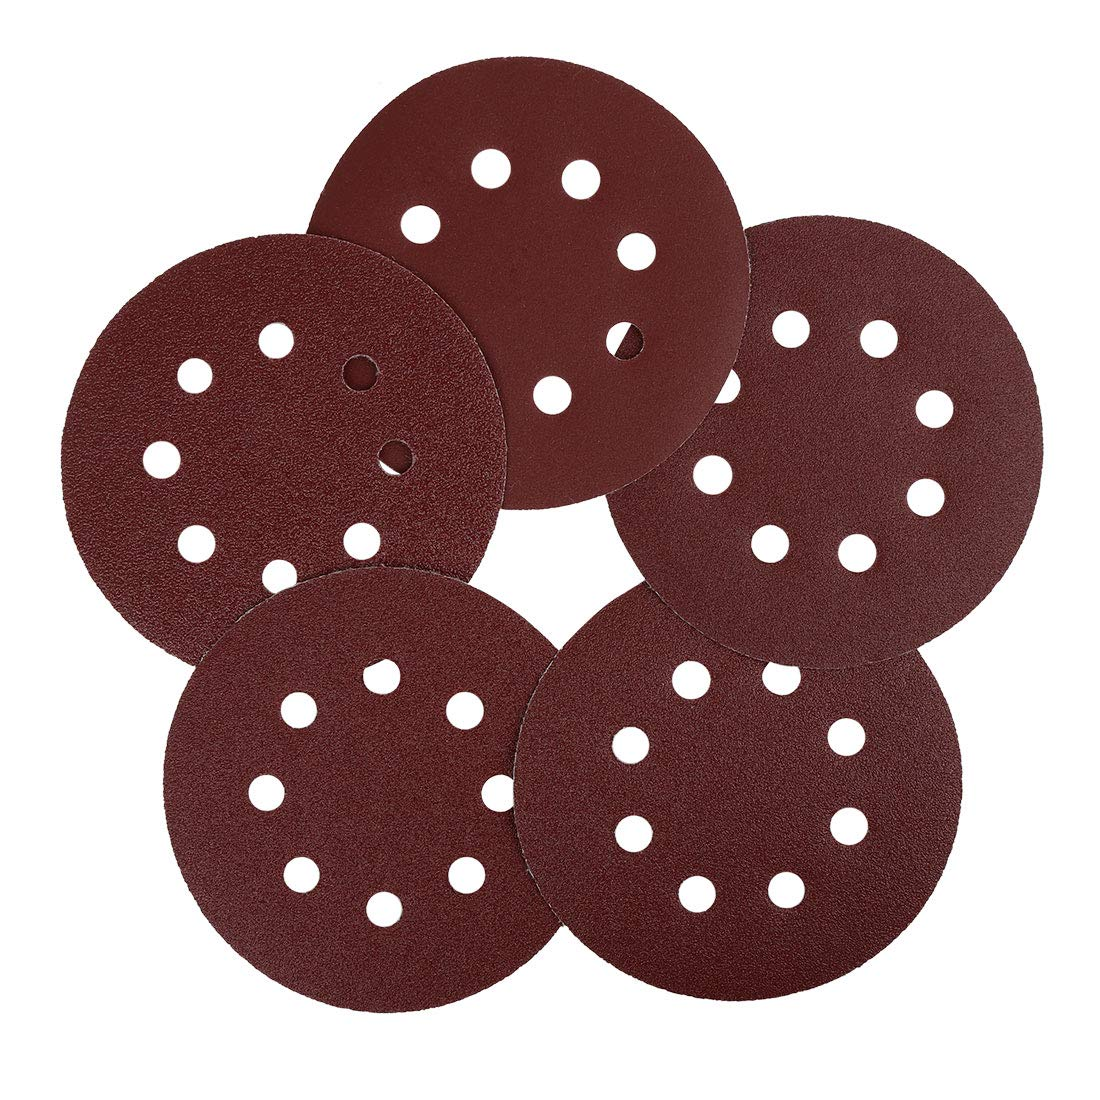 uxcell 100 Pcs 5 Inch 8 Hole Hook and Loop Sanding Discs 60 80 100 120 240 Assorted Grits Sandpaper